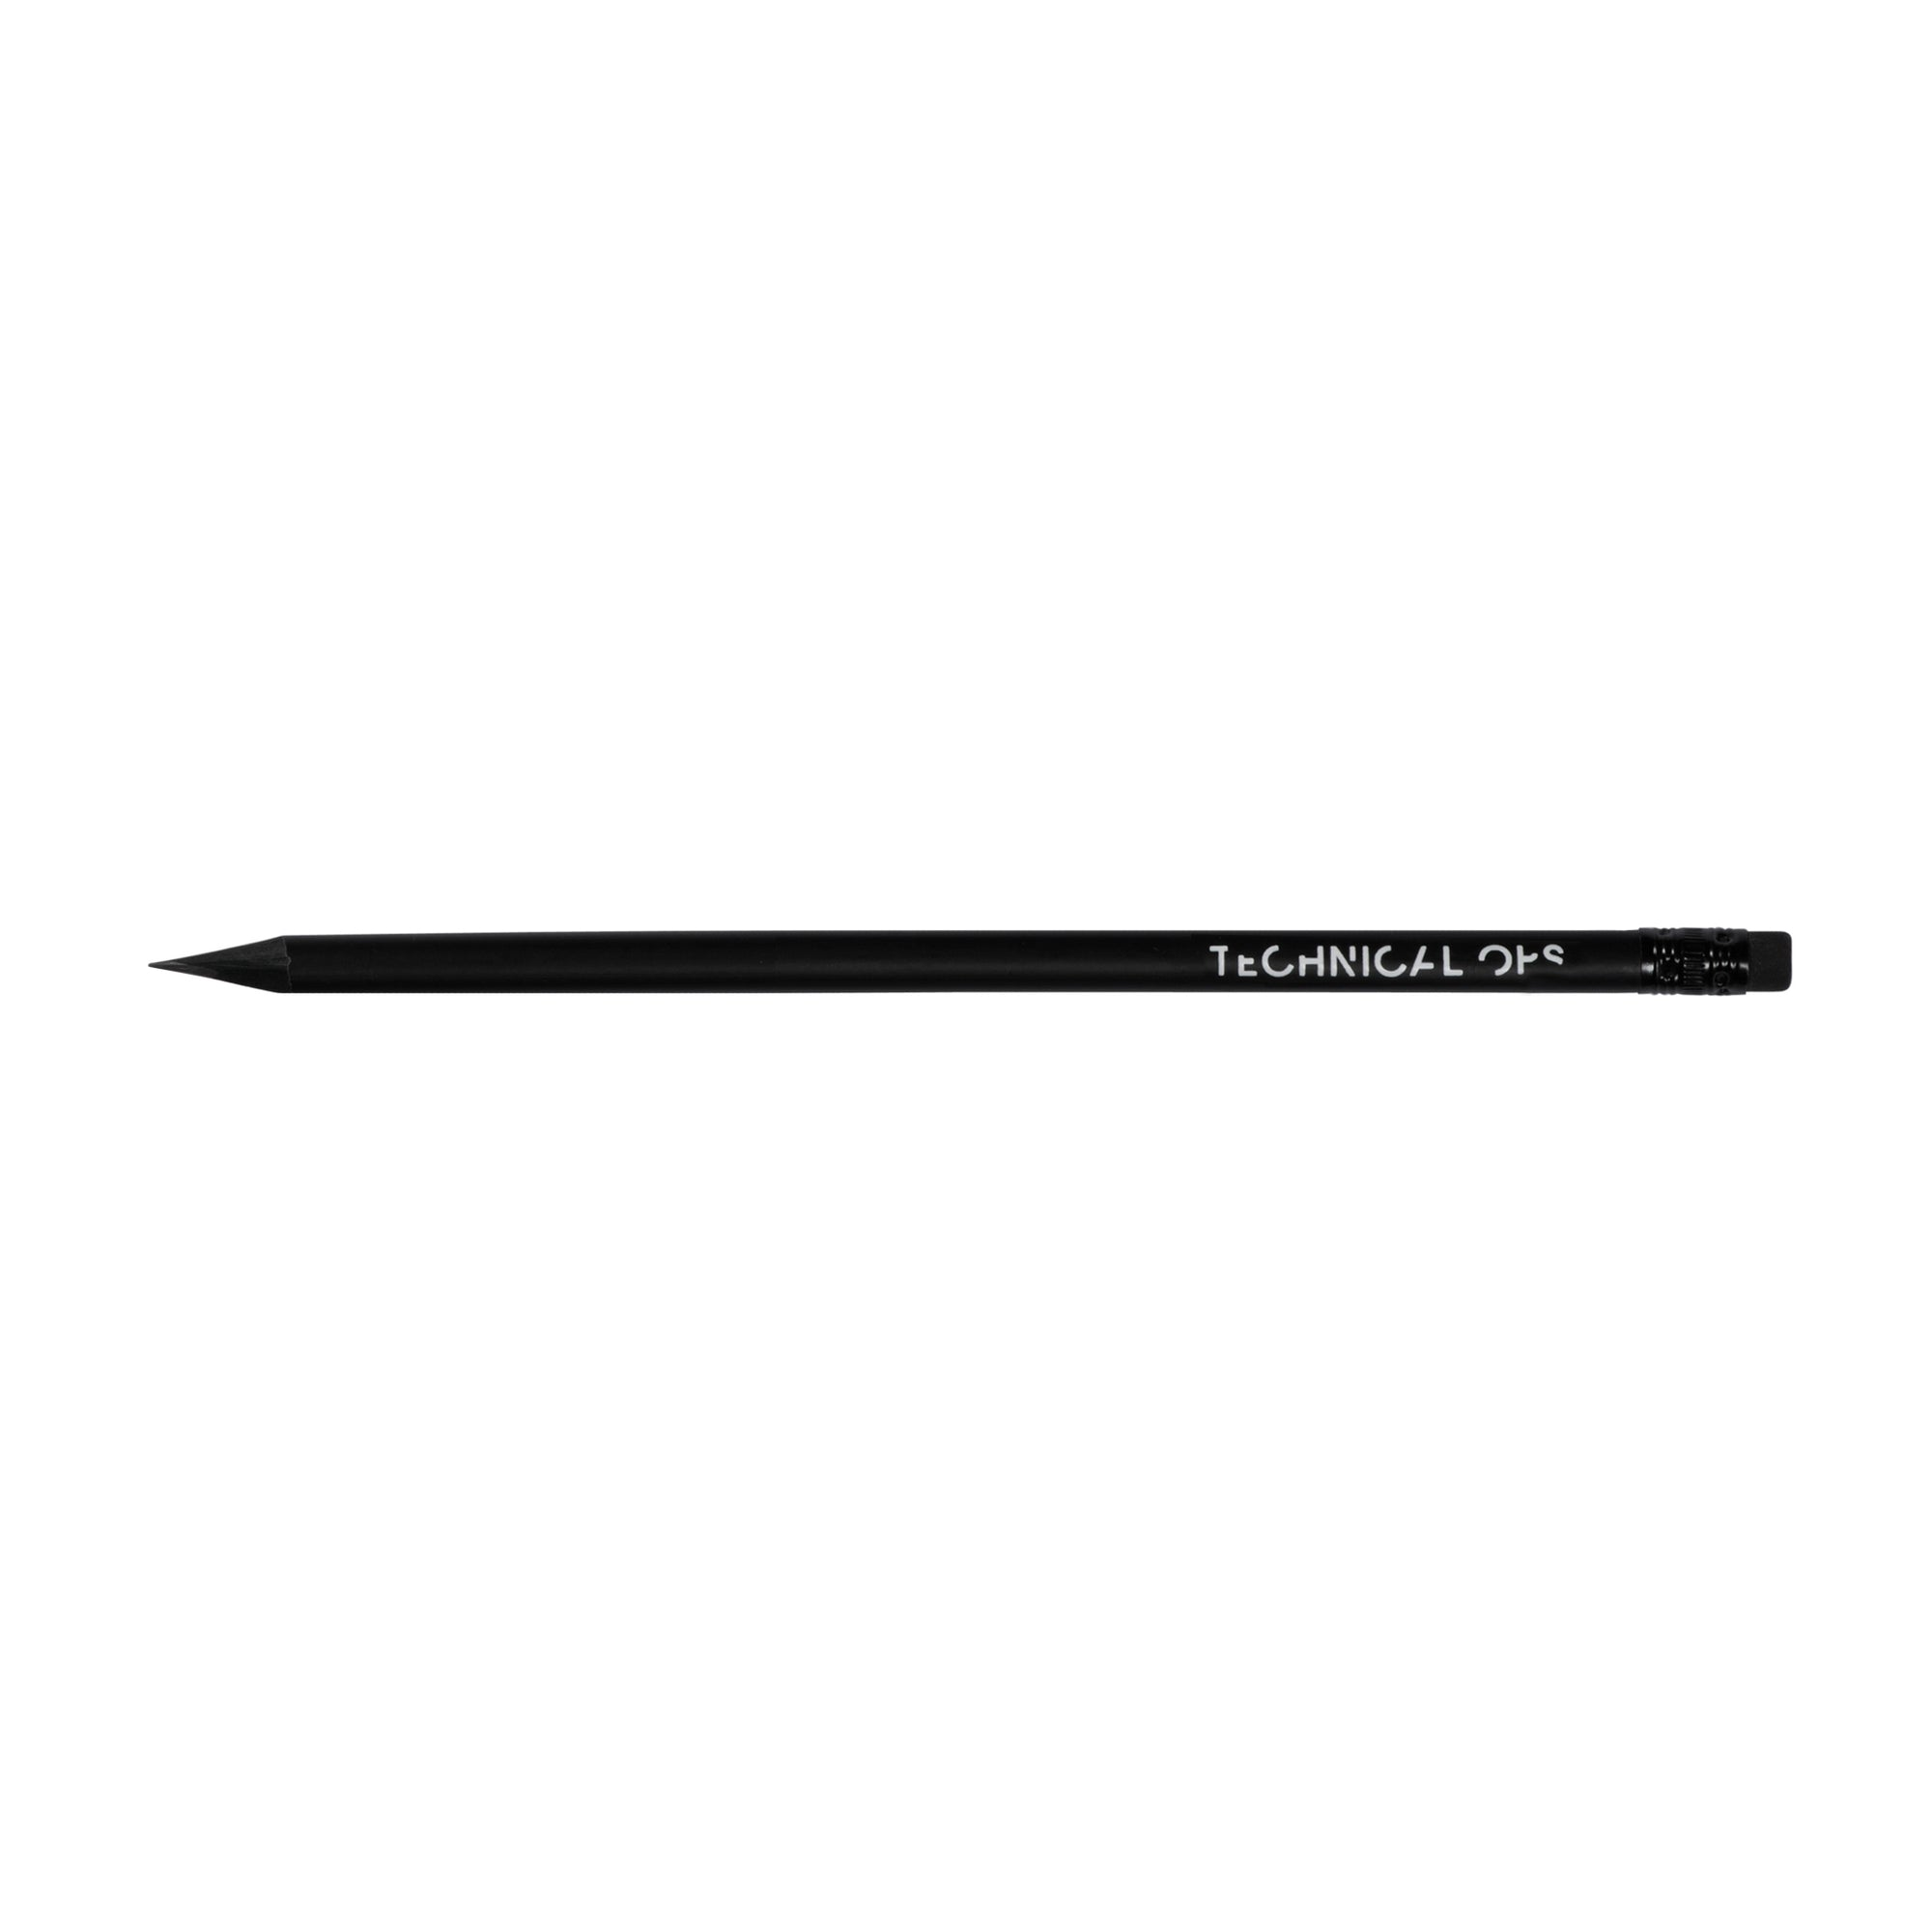 SPYSCAPE Technical Ops Pencil -